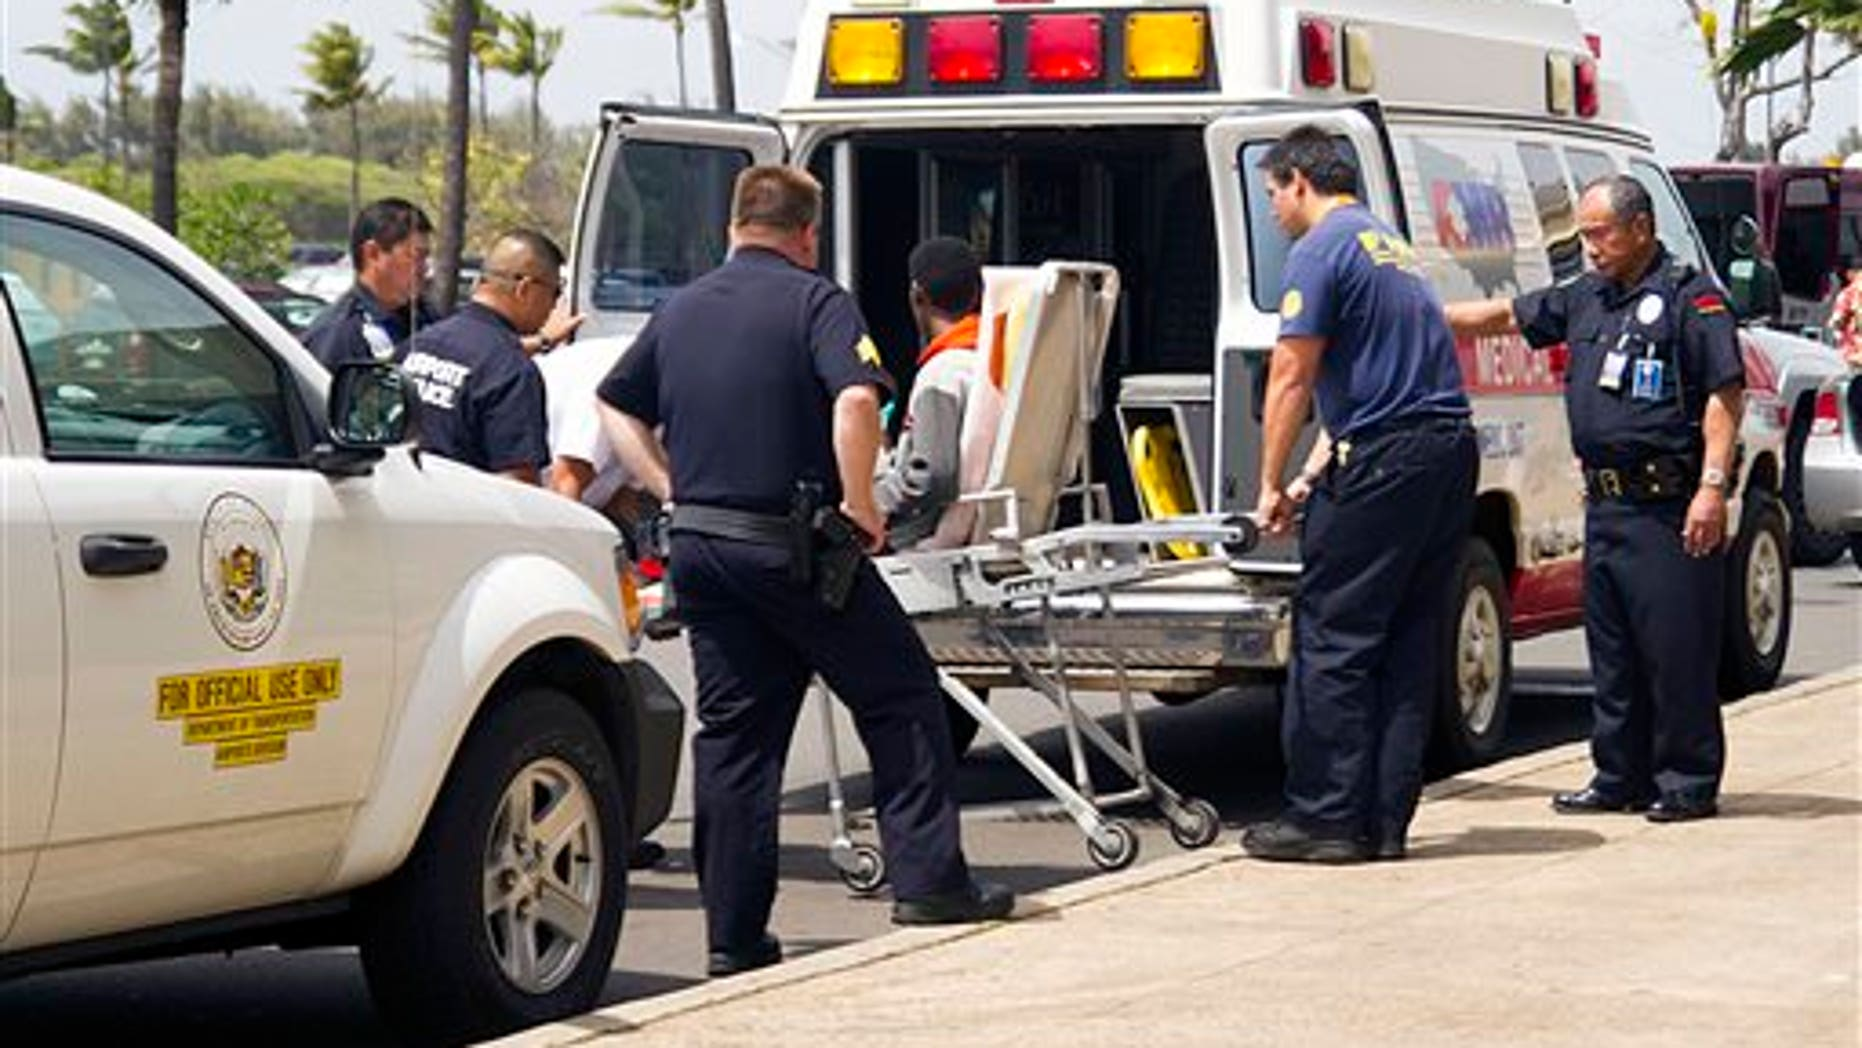 """A 16-year-old boy, seen sitting on a stretcher center, who stowed away in the wheel well of a flight from San Jose, Calif., to Maui is loaded into an ambulance at Kahului Airport in Kahului, Maui, Hawaii Sunday afternoon, April 20, 2014. The boy survived the trip halfway across the Pacific Ocean unharmed despite frigid temperatures at 38,000 feet and a lack of oxygen, FBI and airline officials said. FBI spokesman Tom Simon in Honolulu told The Associated Press on Sunday night that the boy was questioned by the FBI after being discovered on the tarmac at the Maui airport with no identification. """"Kid's lucky to be alive,"""" Simon said. (AP Photo/The Maui News, Chris Sugidono)"""